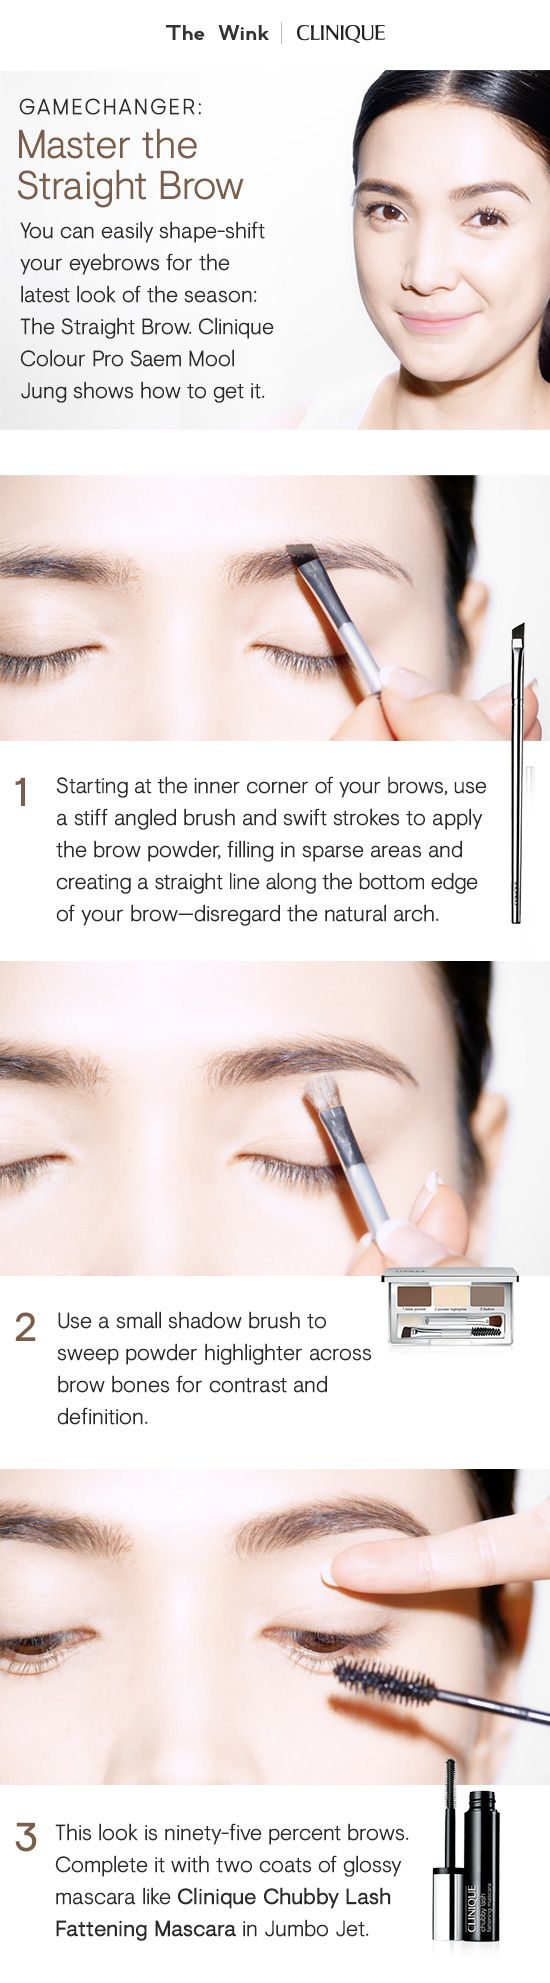 Master the Straight Brow with these tips from Clinique Colour Pro Saem Mool Jung. 1. Starting at the inner corner of your brows, use a stiff angled brush and swift strokes to apply the brow powder. Fill in any sparse areas and create a straight line—disregard the natural arch. 2. Use a small shadow brush to sweep powder highlighter across brow bones. 3. Complete the look with Chubby Lash Fattening Mascara in Jumbo Jet.